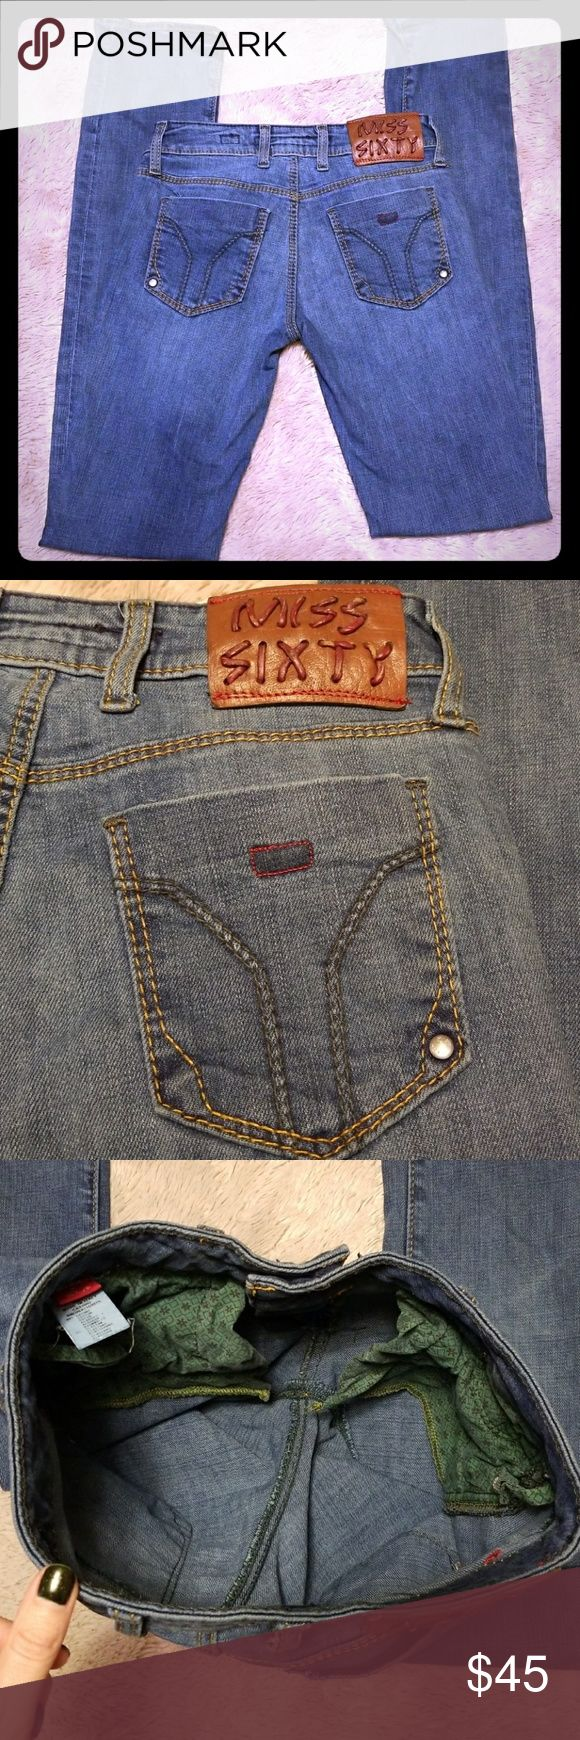 """Miss Sixty 60 size 26 Eden jeans Excellent used condition! When laid flat: Waist: 13"""" Rise: 7.5"""" Inseam: 32.5""""  Make an offer, feel free to ask any questions! Miss Sixty Jeans"""